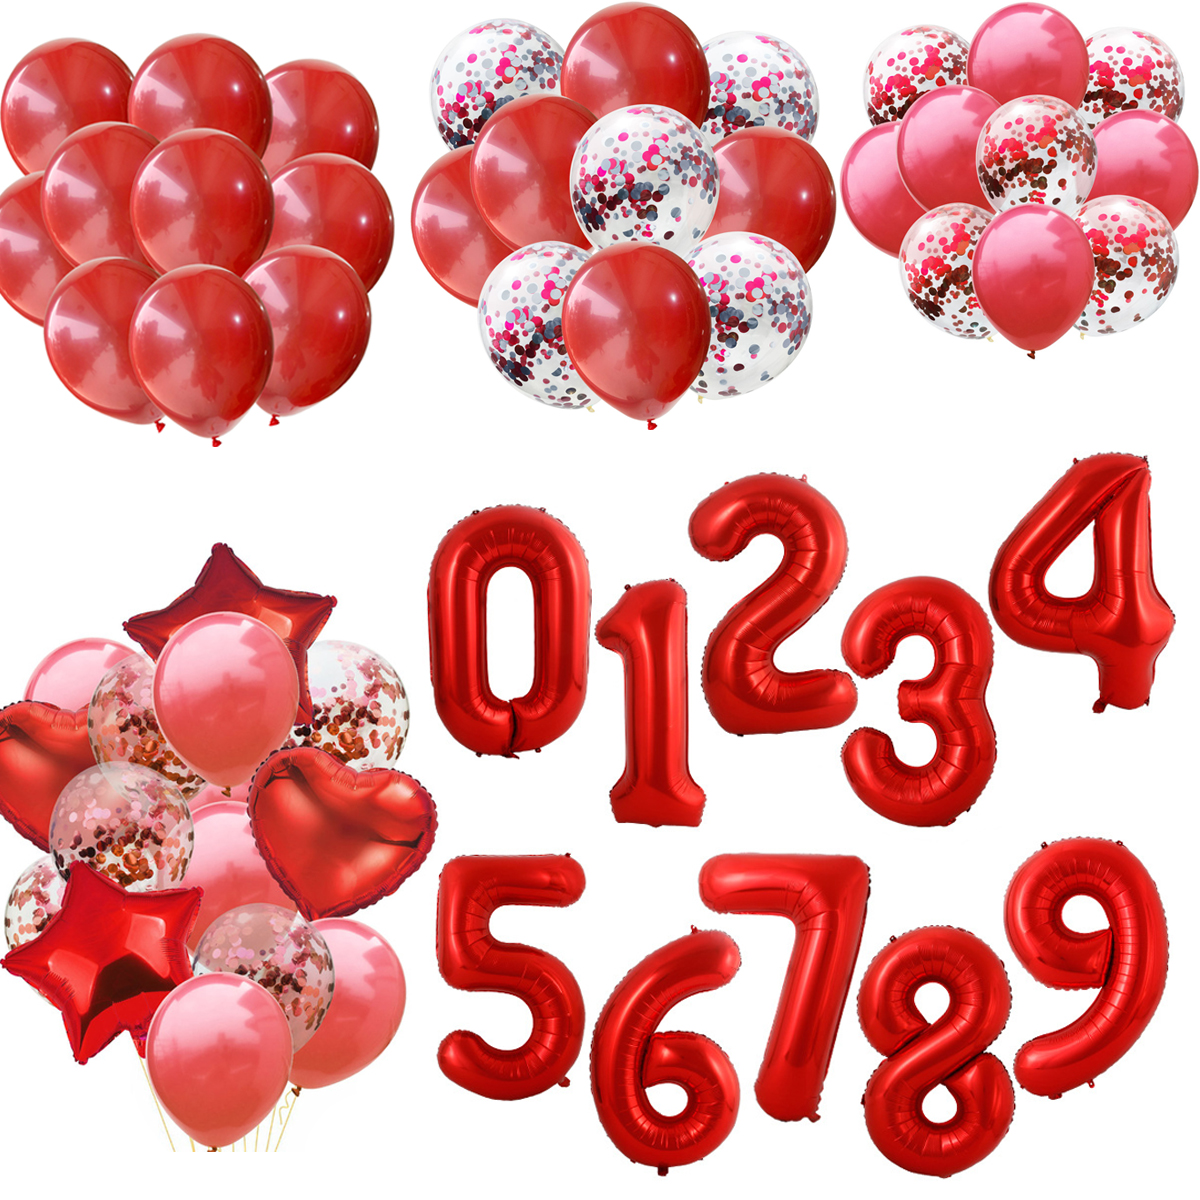 40 Inch Red Big Size Number Foil Helium Balloons 0 <font><b>1</b></font> 2 3 4 5 6 7 8 9 Birthday Party Baby Shower Decoration Large Globos Balloon image